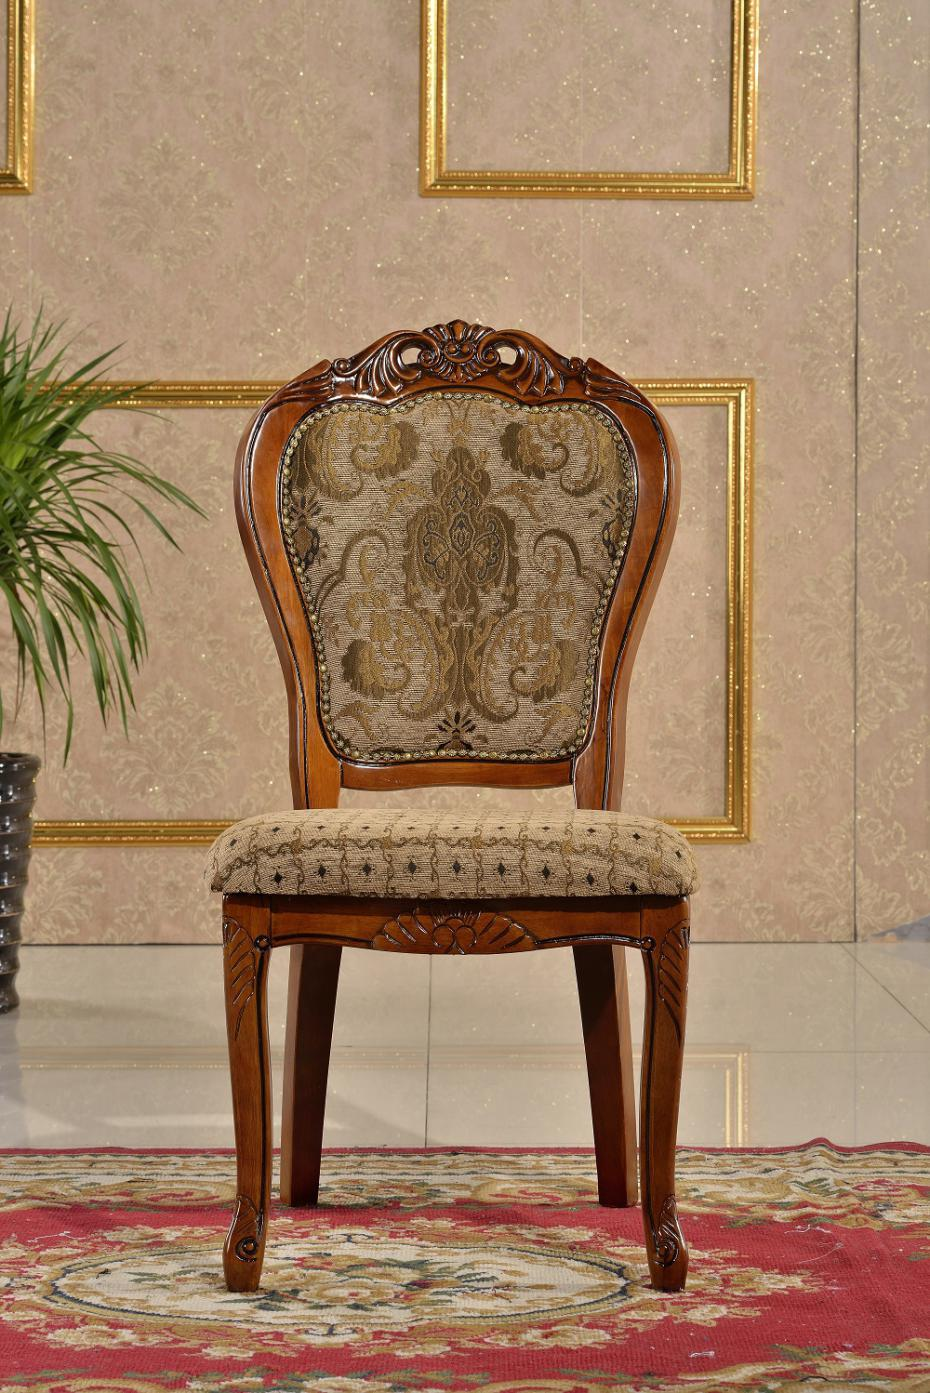 Old wooden chair styles - European Style Pattern Hotel Dining Chair Solid Wood Chair Carved Wood Chair Furniture Living Room